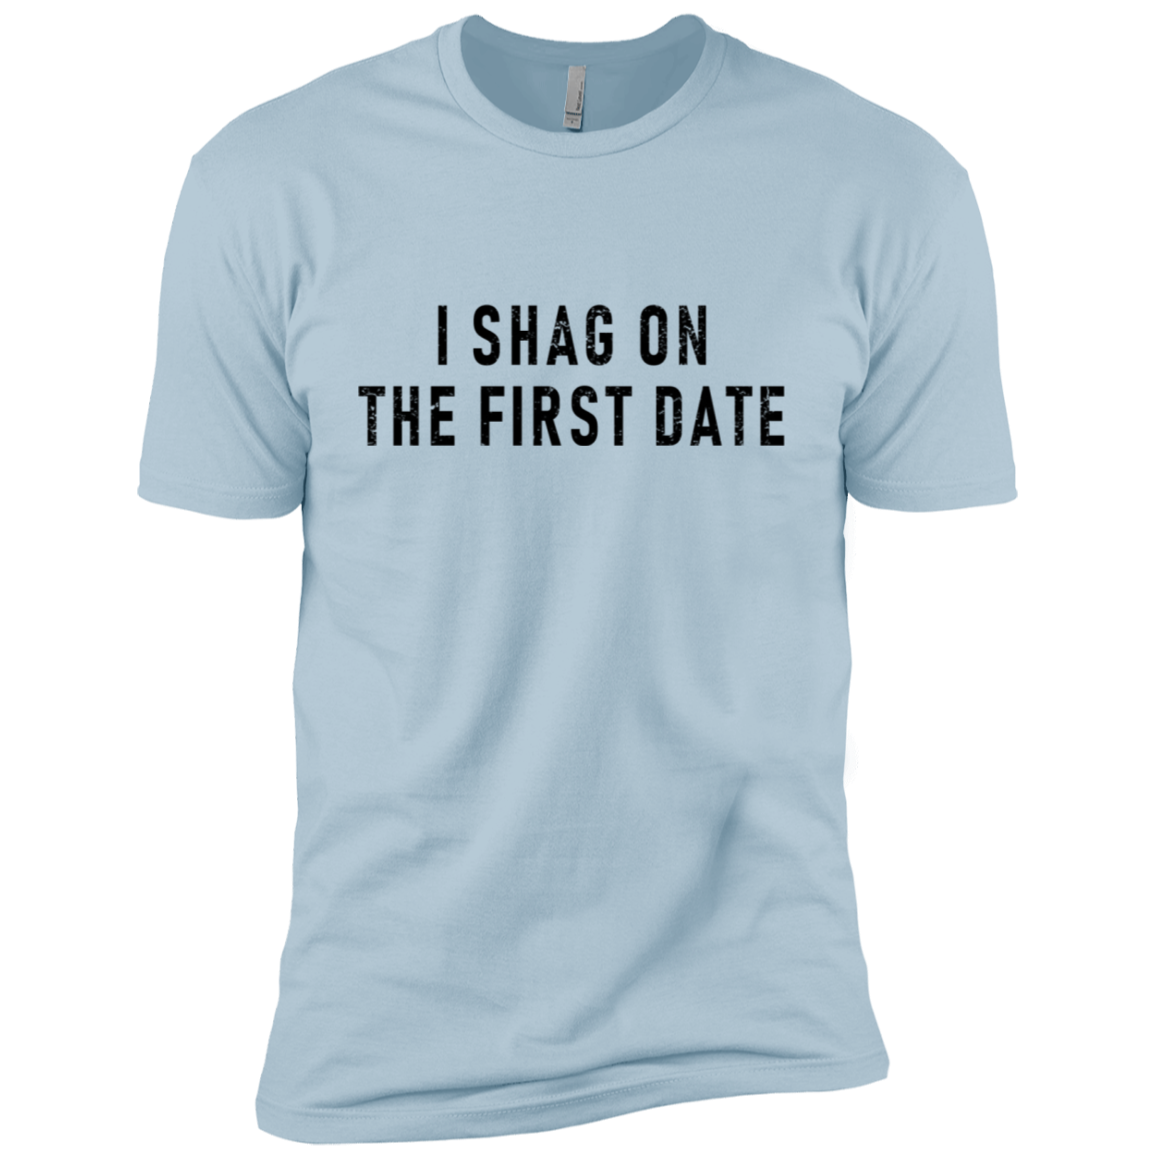 I Shag On The First Date Men's Classic Tee